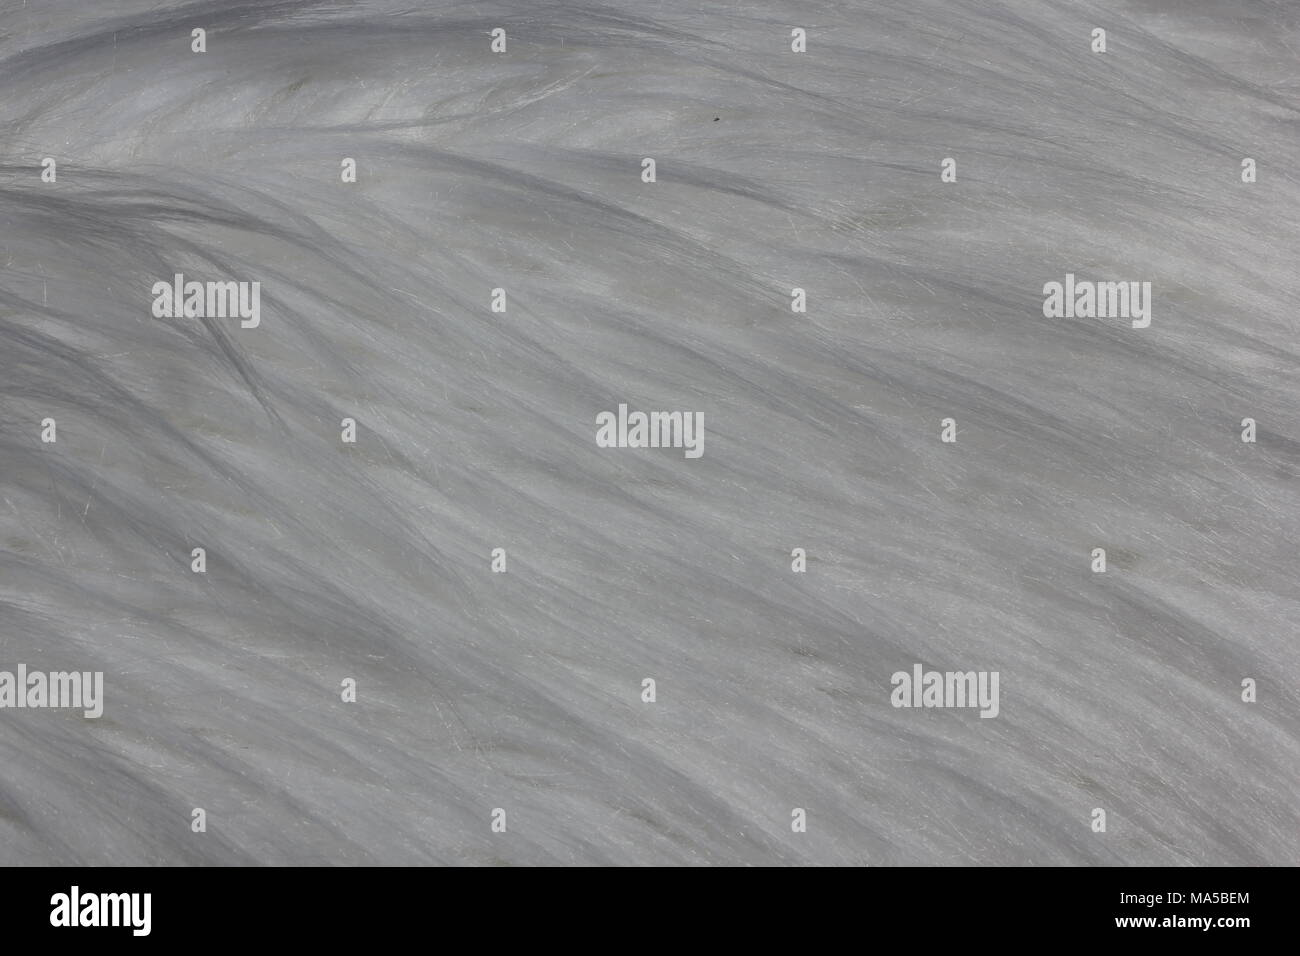 Close-up of a white imitation fur rug that serves well as a background for memes. - Stock Image